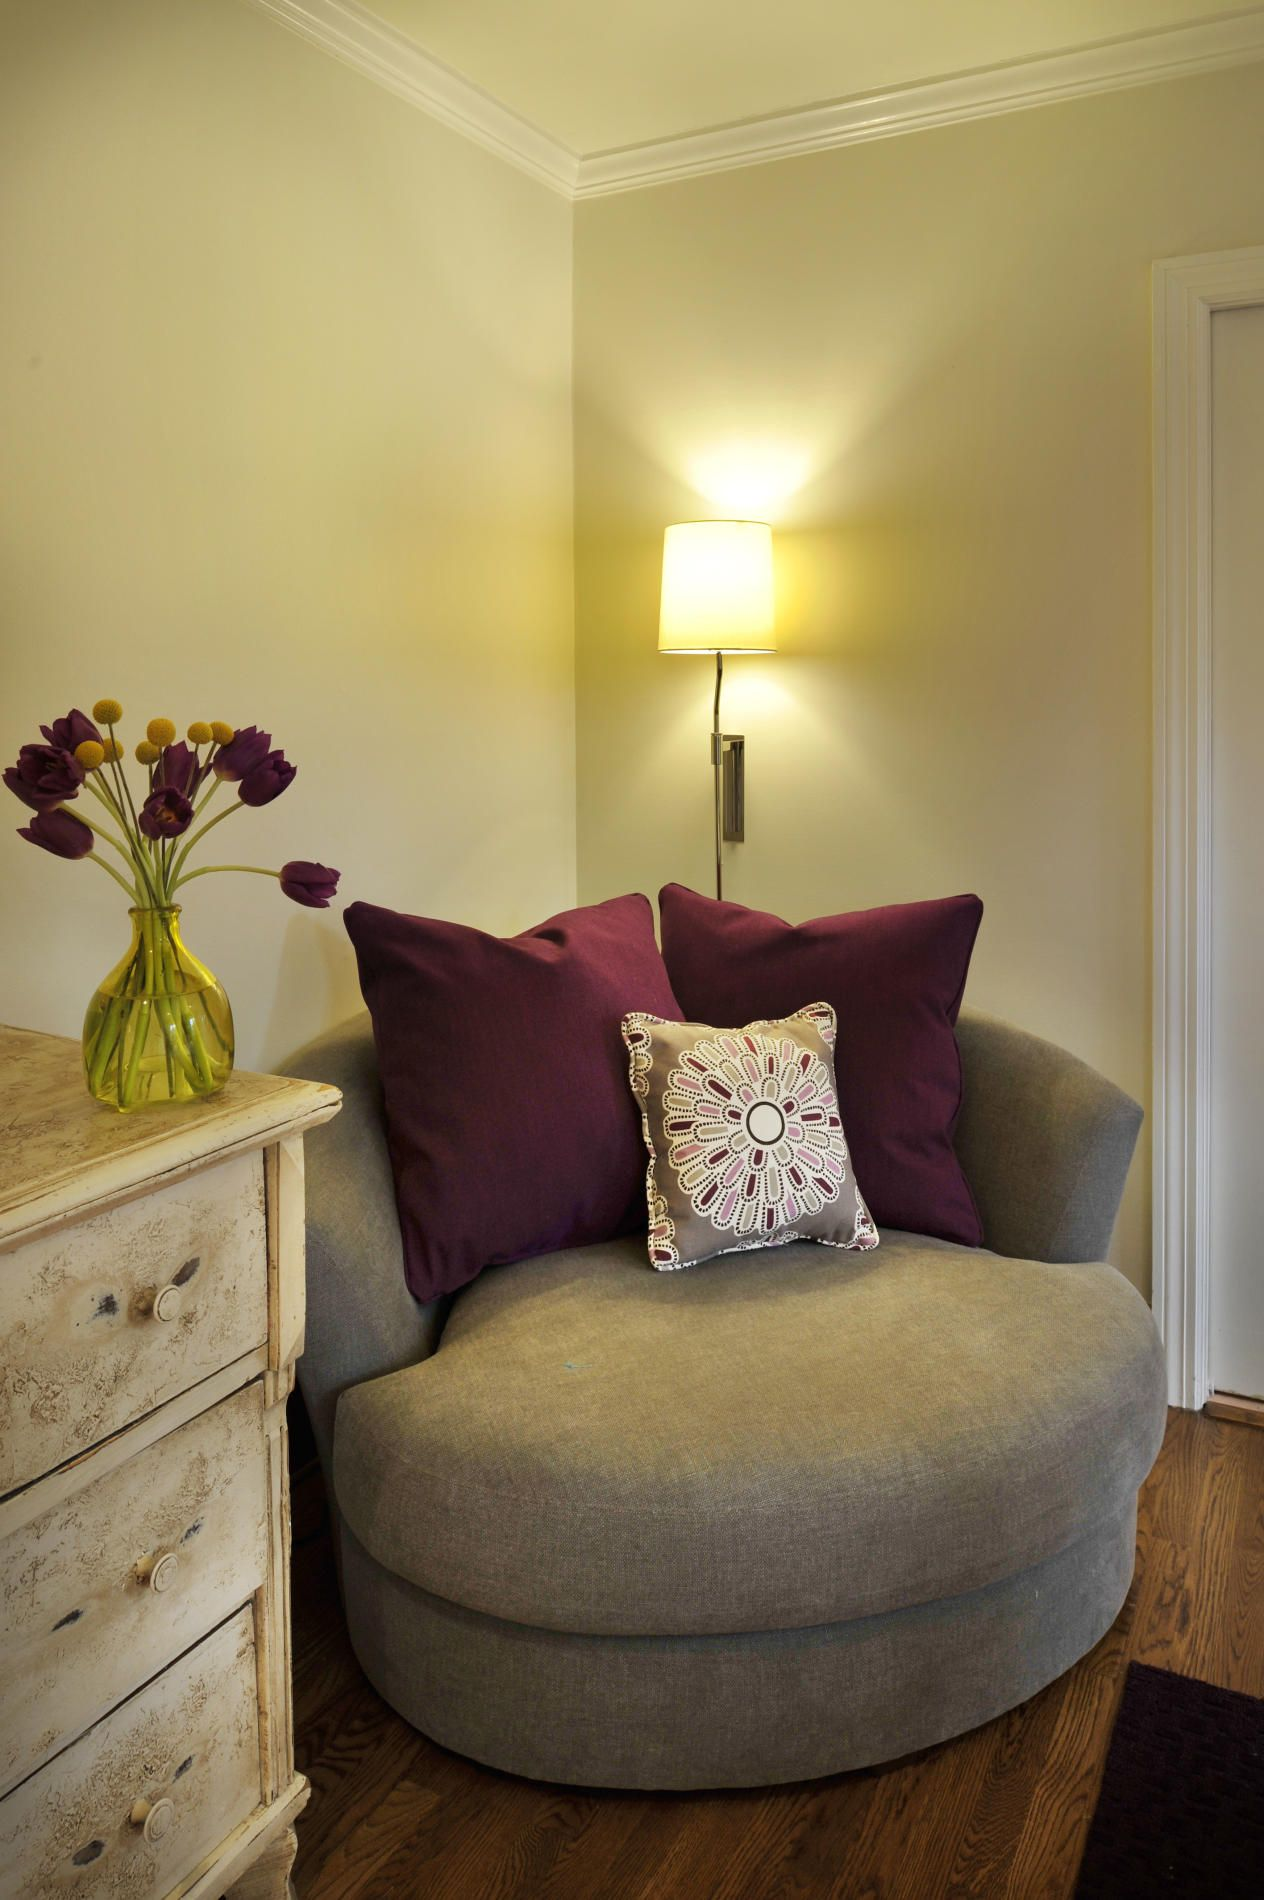 Cozy Chairs Small Spaces Slipcover For Chair And A Half Ottoman Great Corner Choose An Oversized In Space Makes Statement Gives Comfy Style